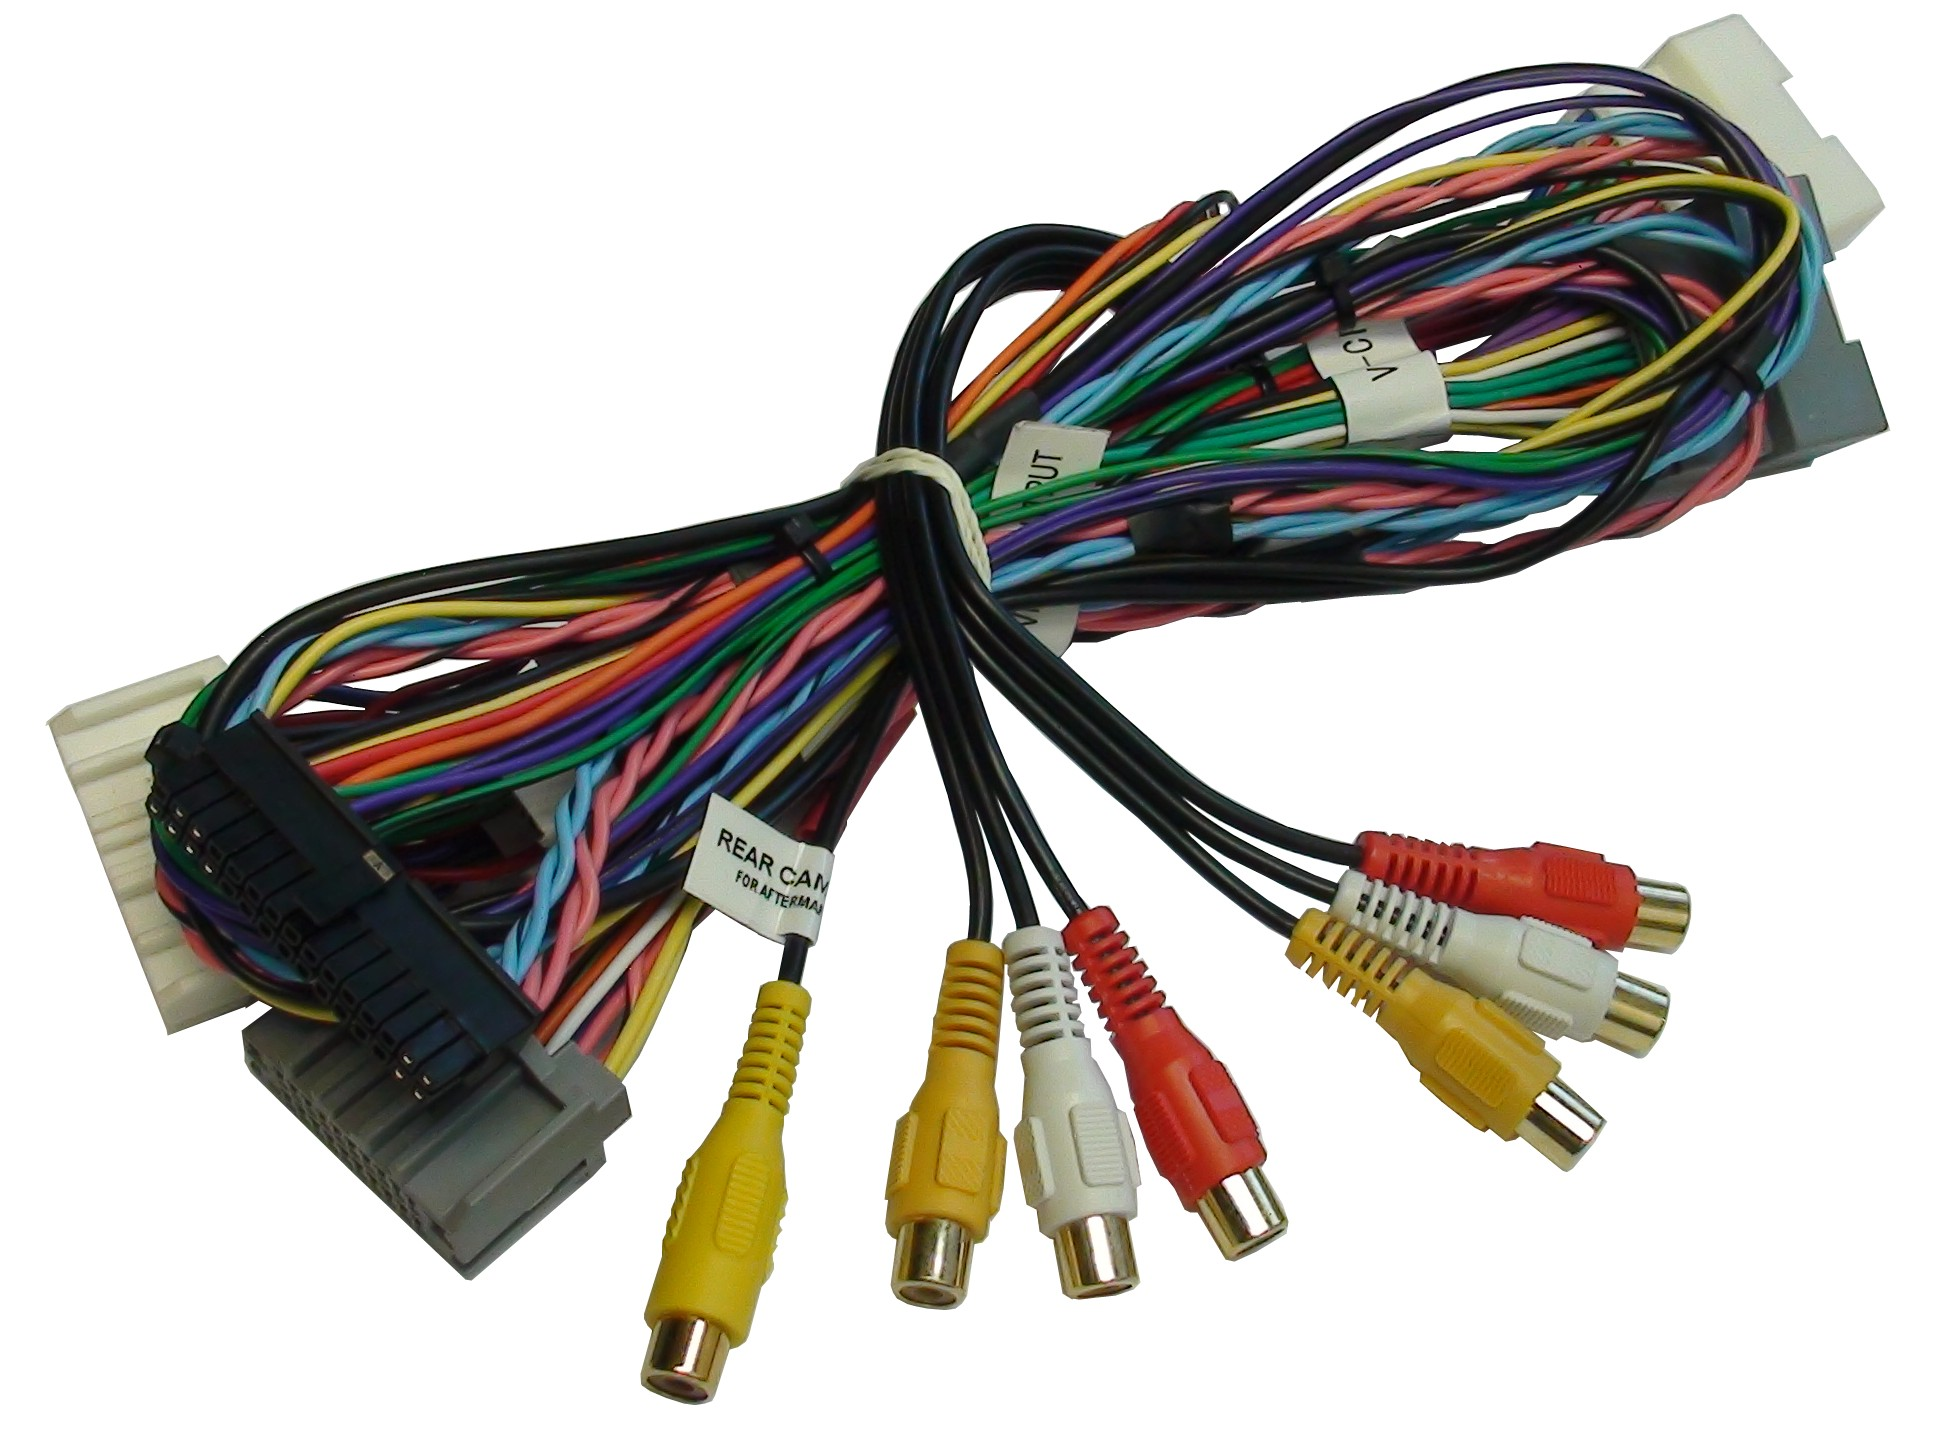 Dodge Magnum Wiring Harness Diagram Free For You Mopar Jeep Wrangler Tow Vehicle Mygig Adapter 2004 Trailer Ad